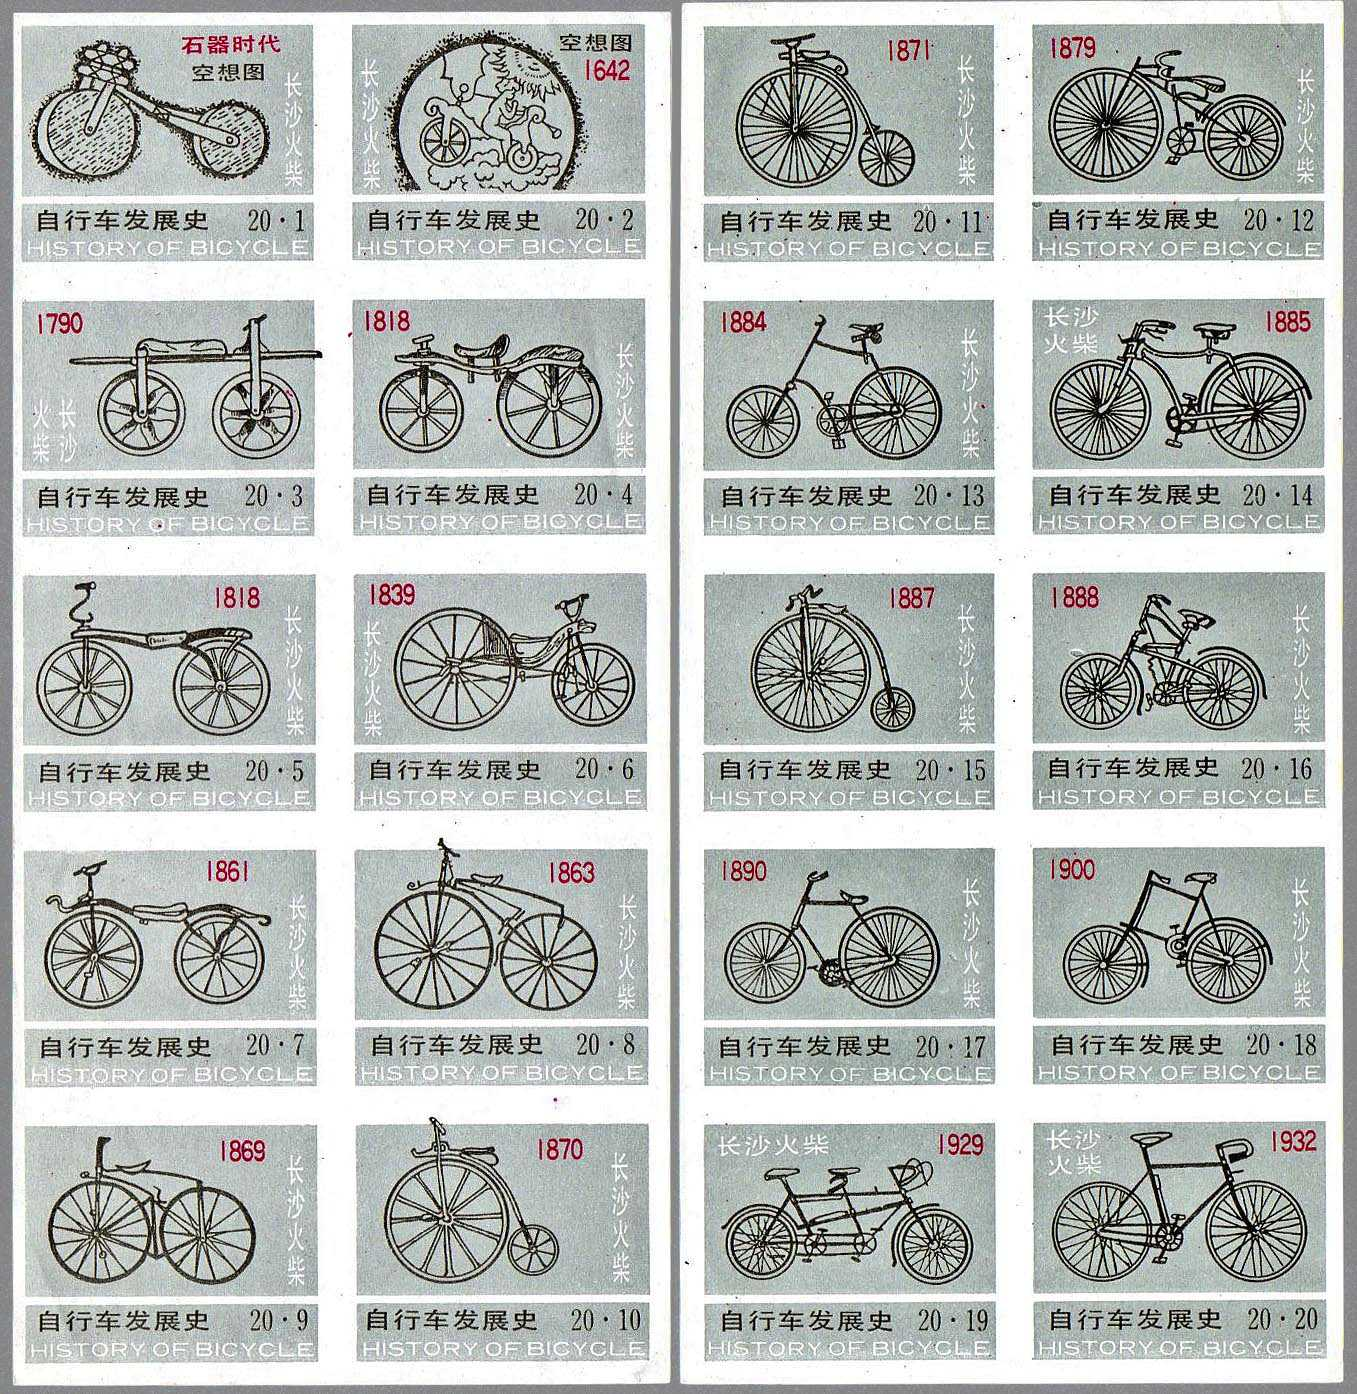 Bikes History Graphic History of the Bicycle